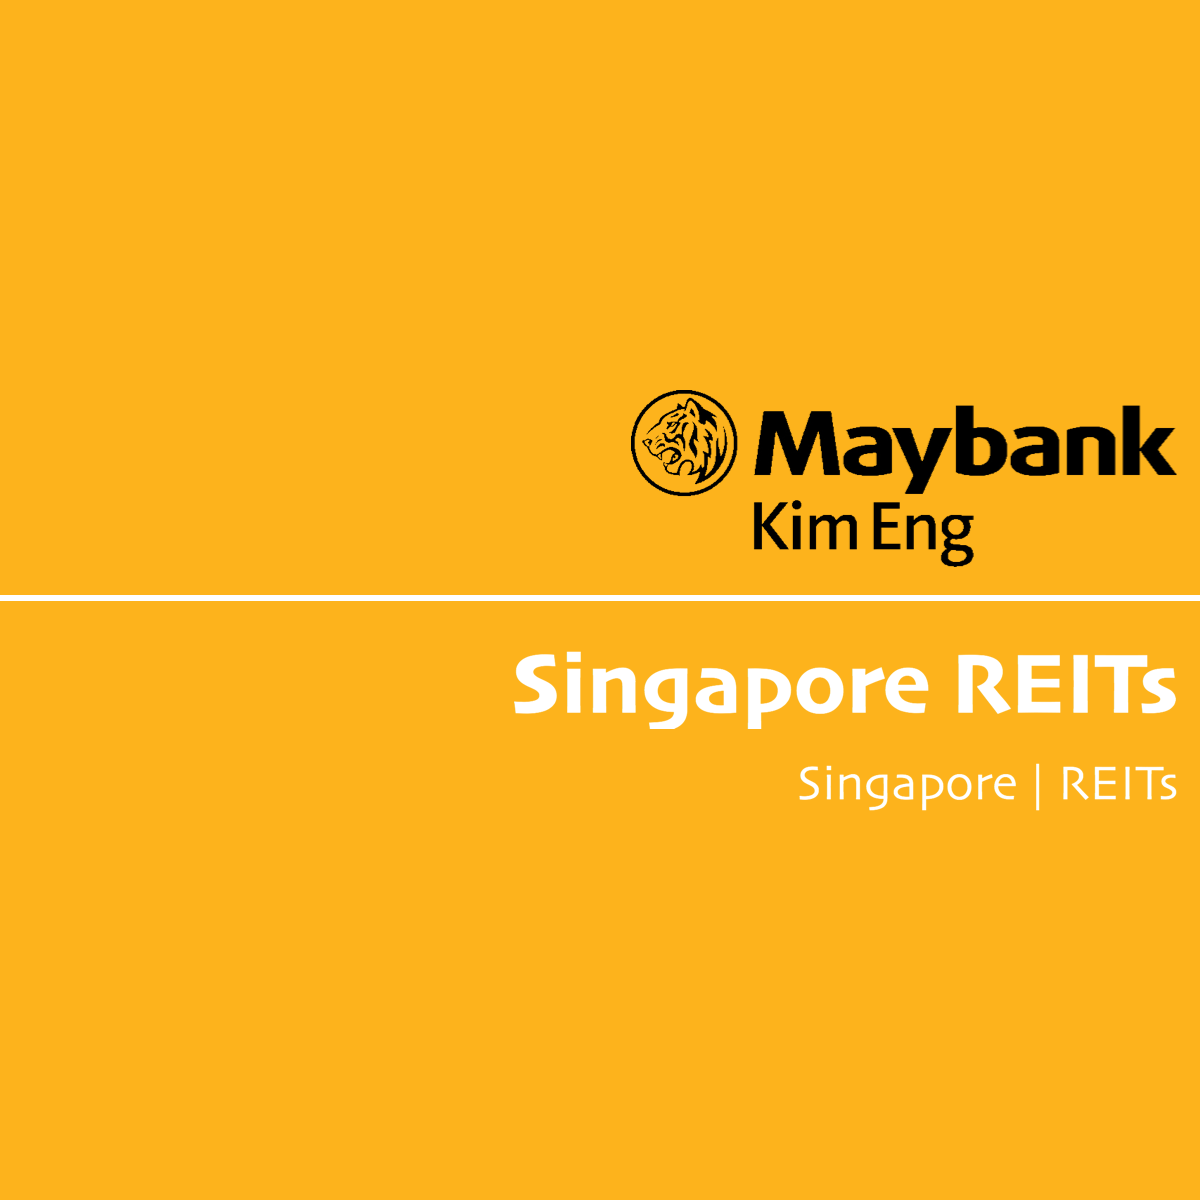 Singapore REITs - Maybank Kim Eng 2017-06-19: Value Creation Of The Office REIT Managers